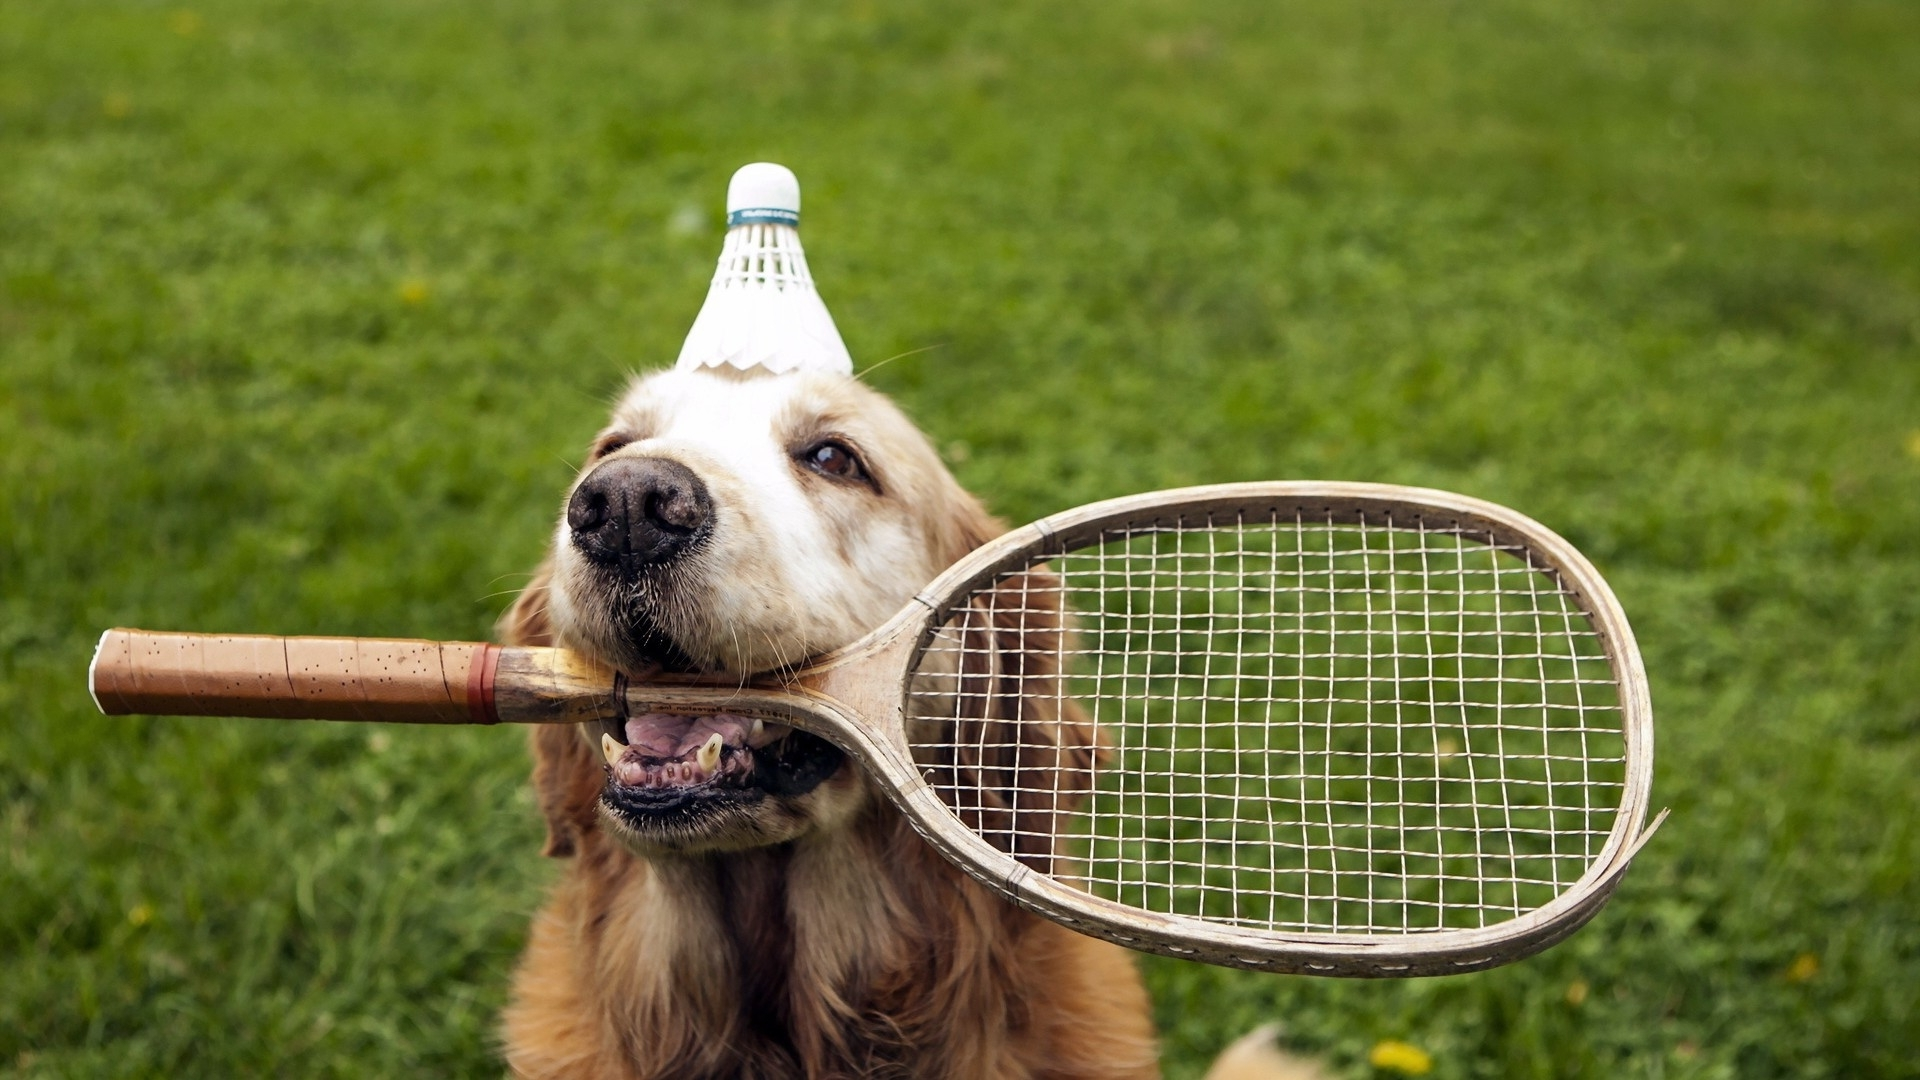 badminton dog